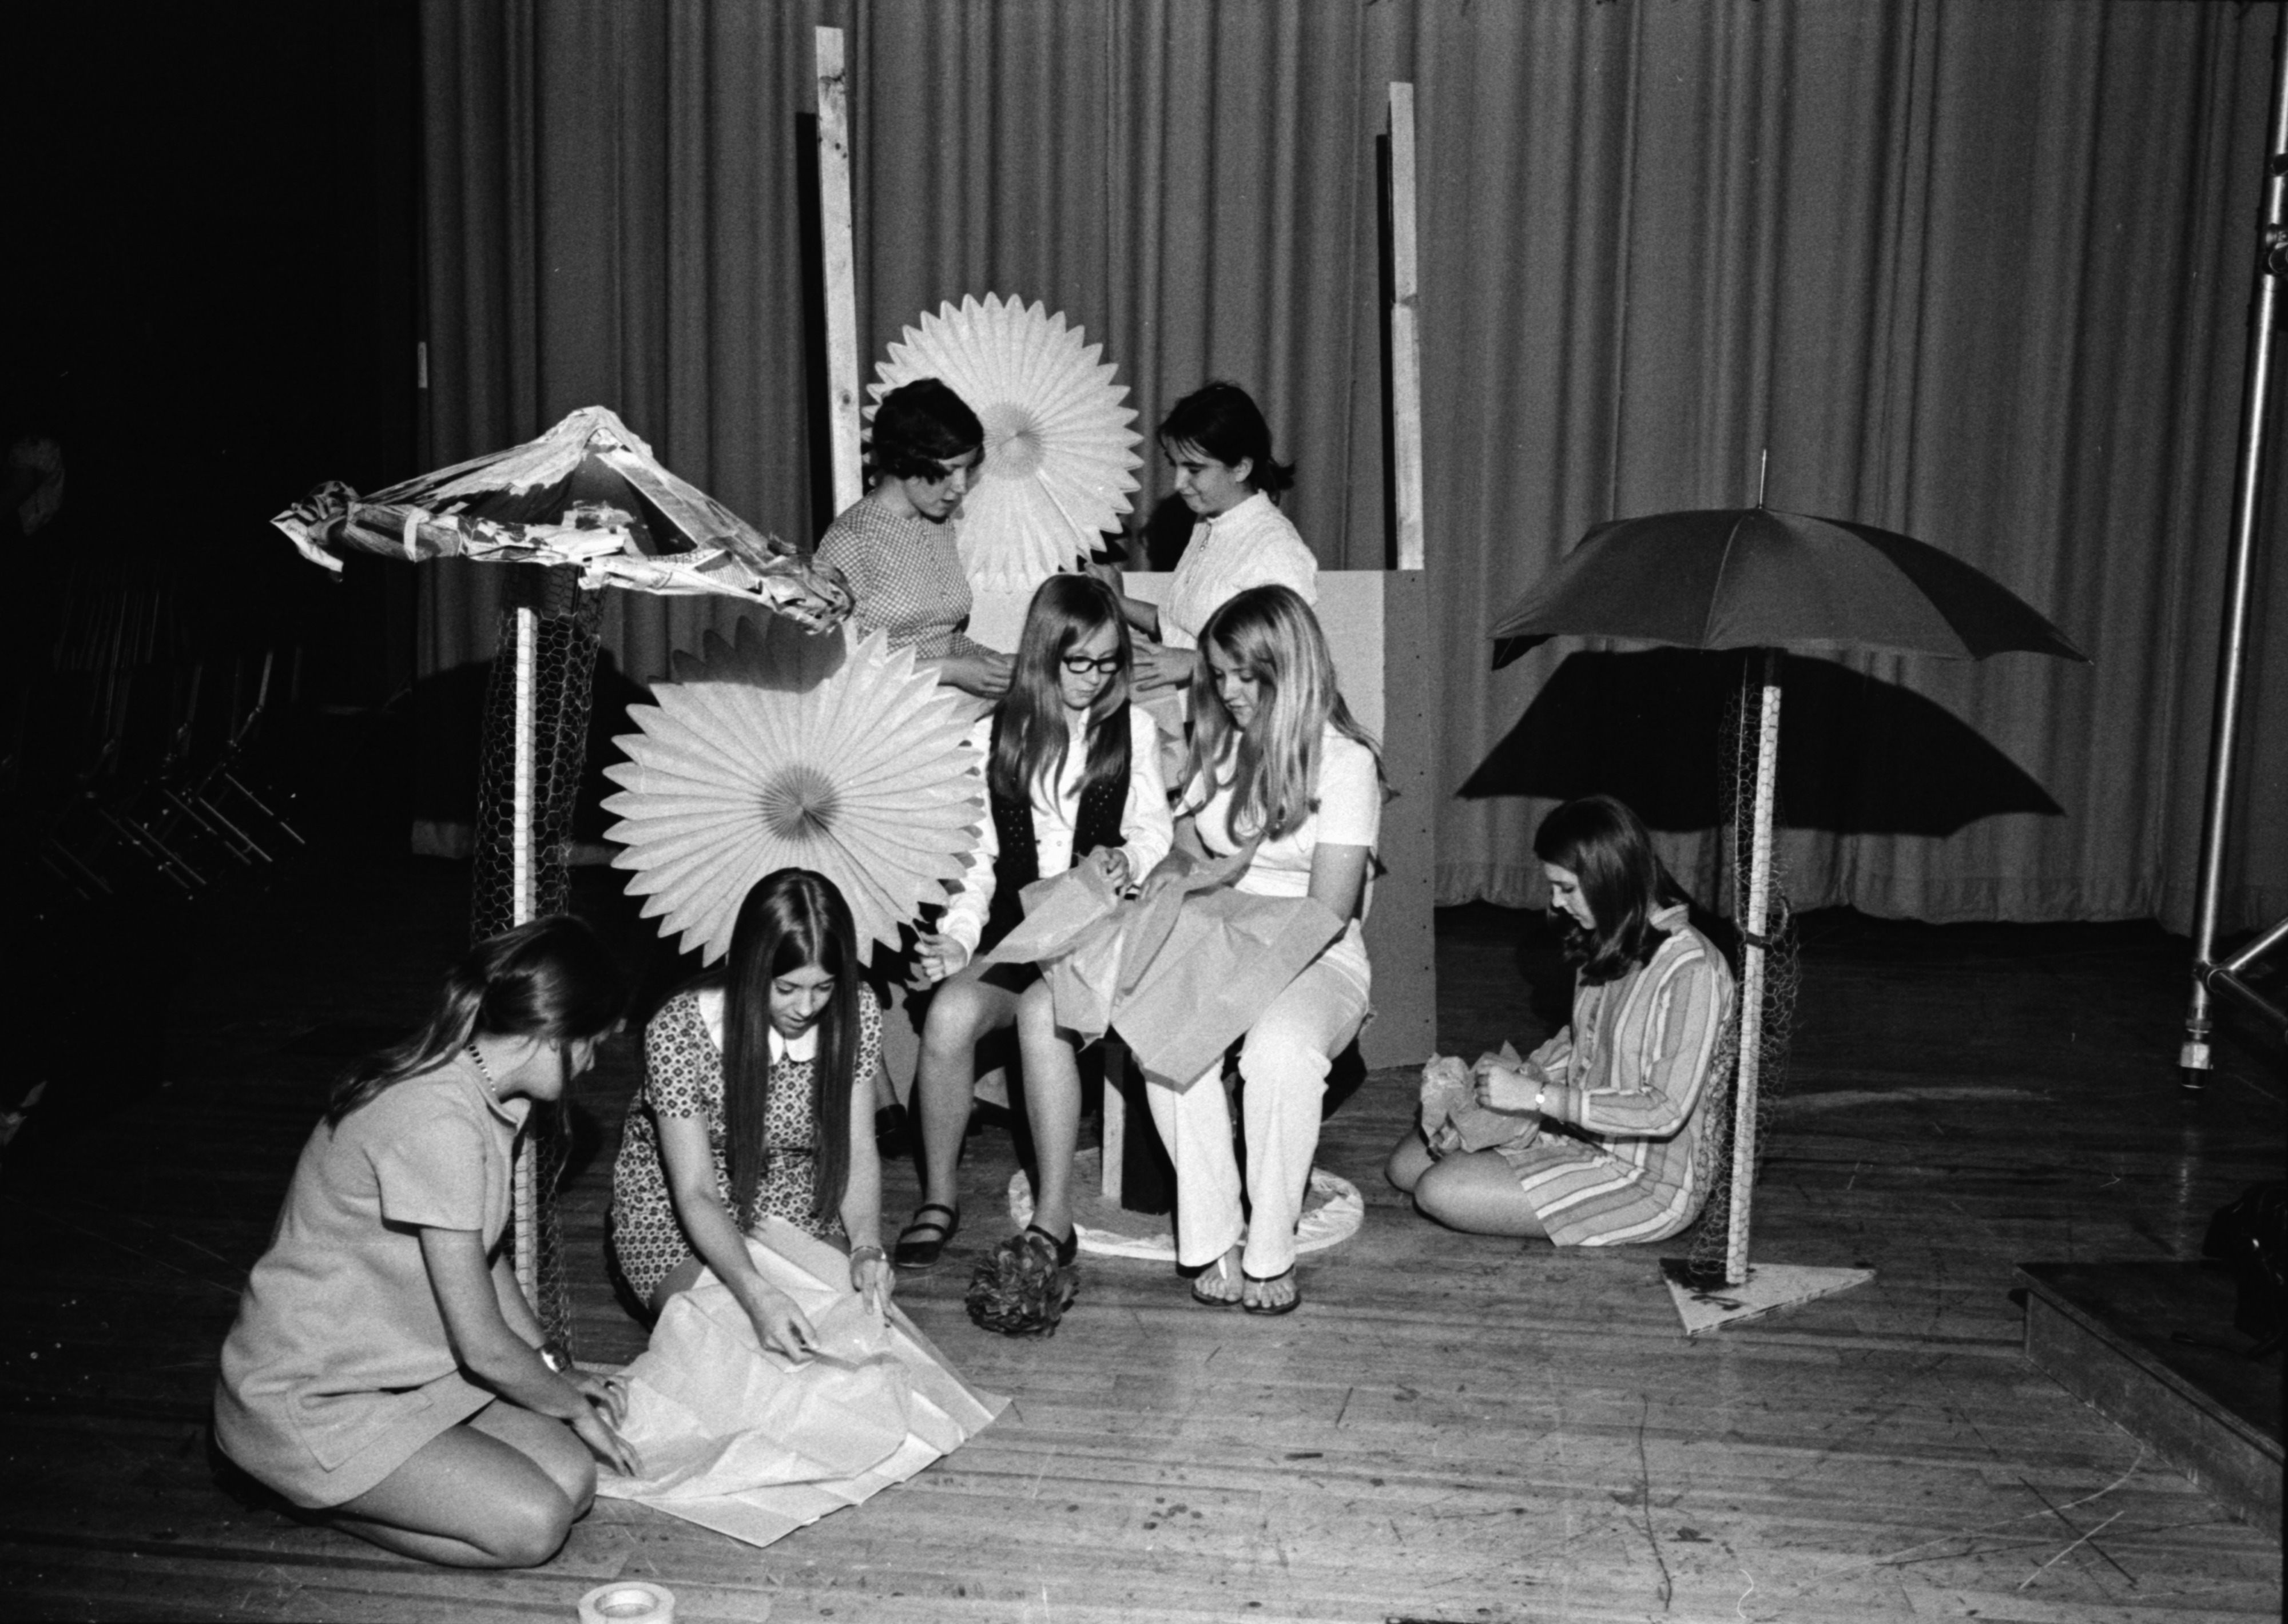 A Group of Students Work on Prom Decorations, May 1971 image